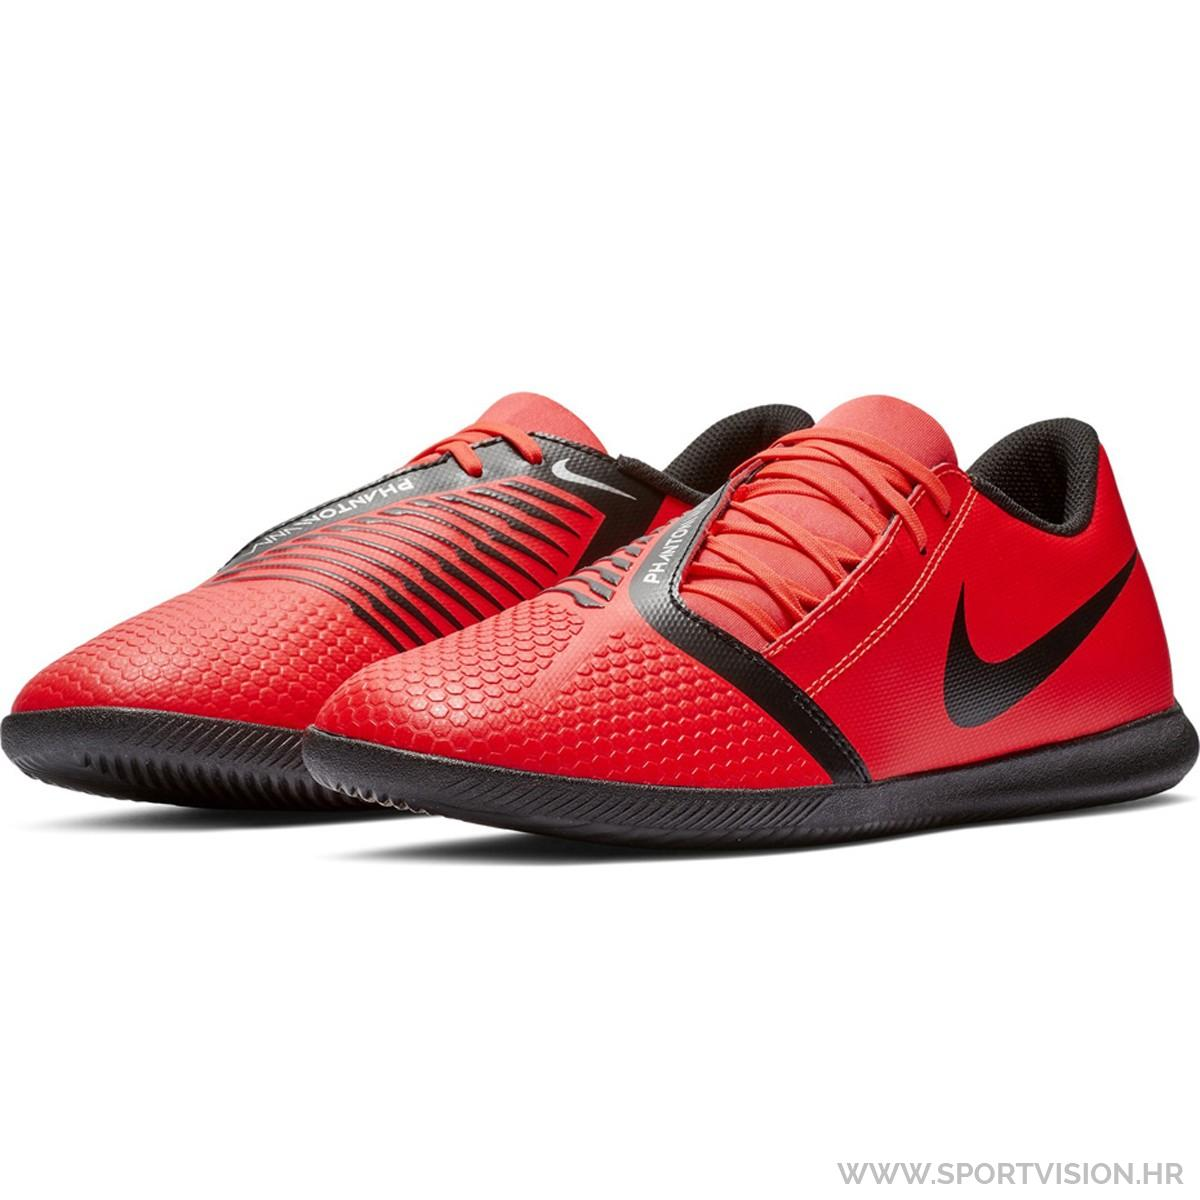 NIKE tenisice PHANTOM VENOM CLUB IC